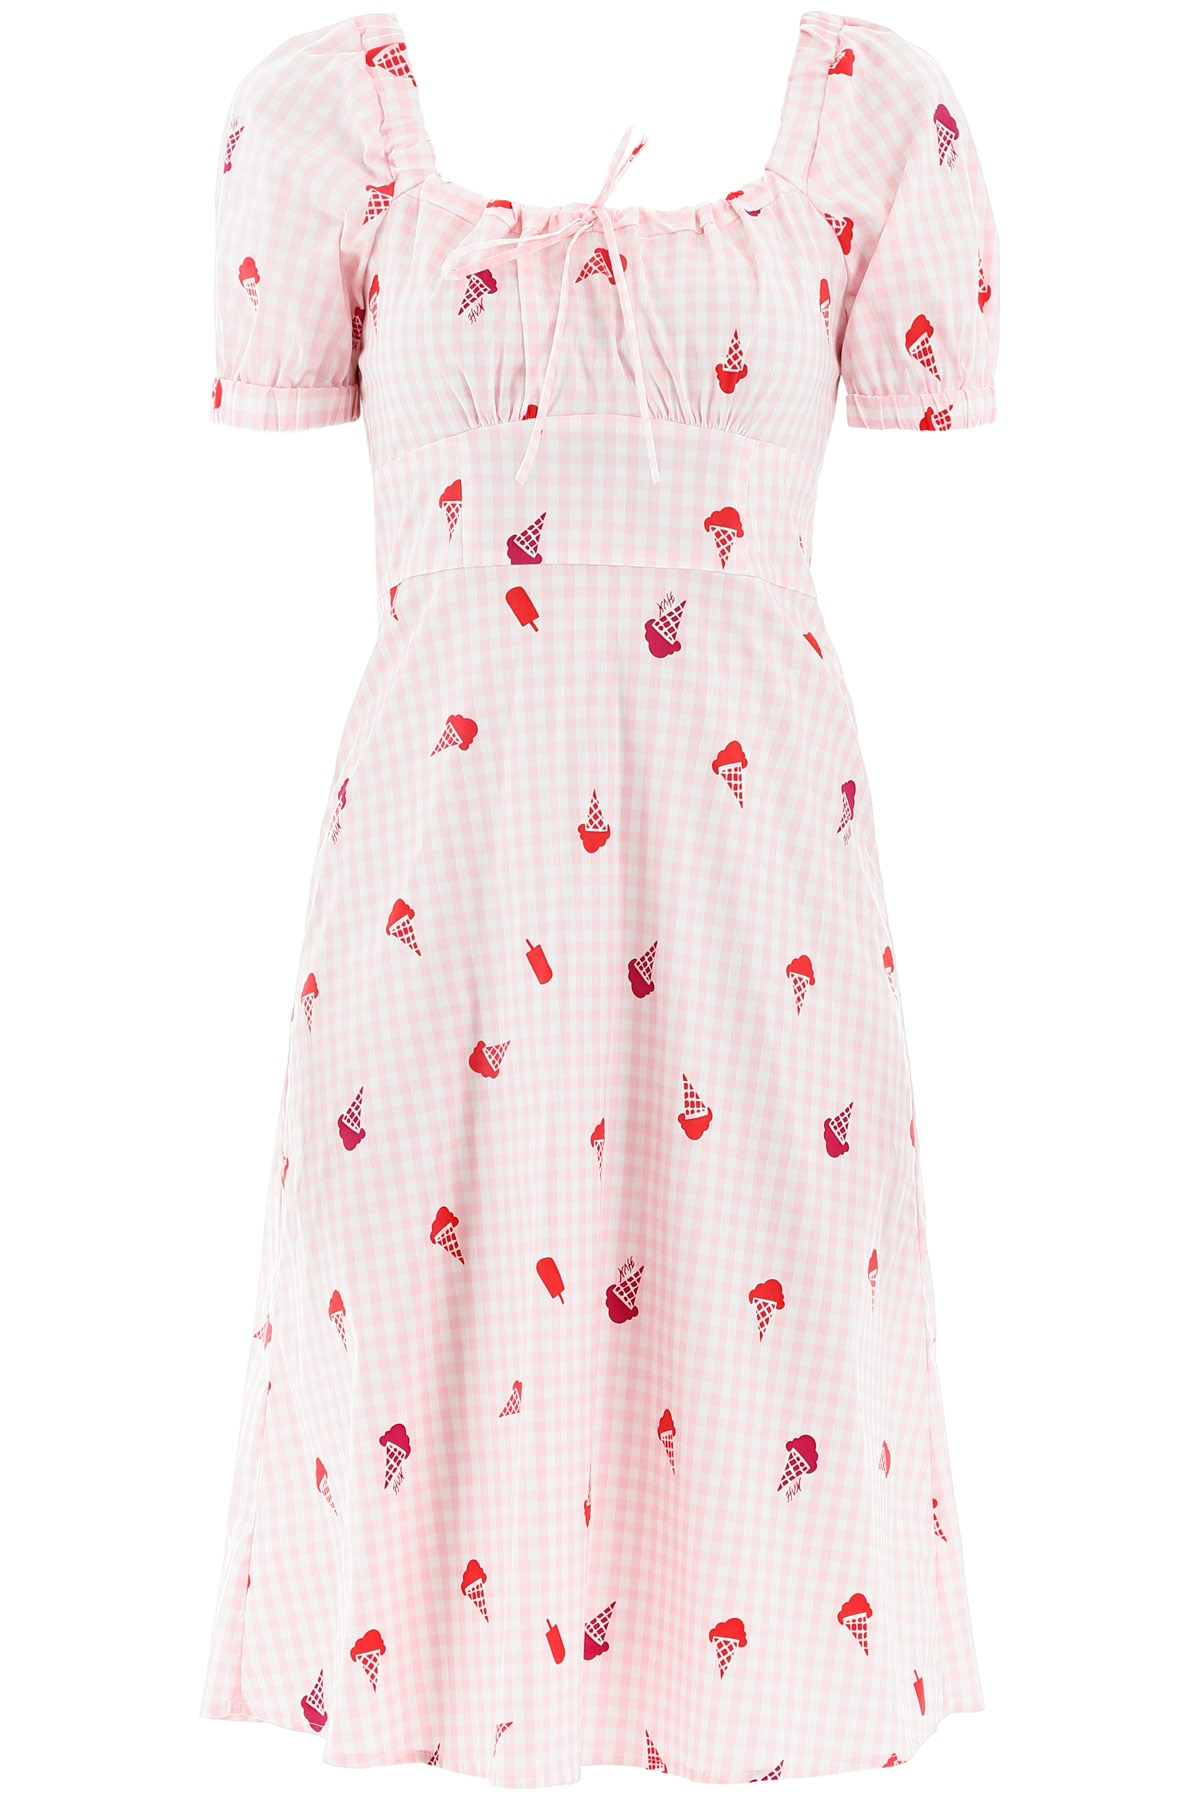 HVN HOLLAND ICE CREAM DRESS 4 Pink, White, Red Cotton